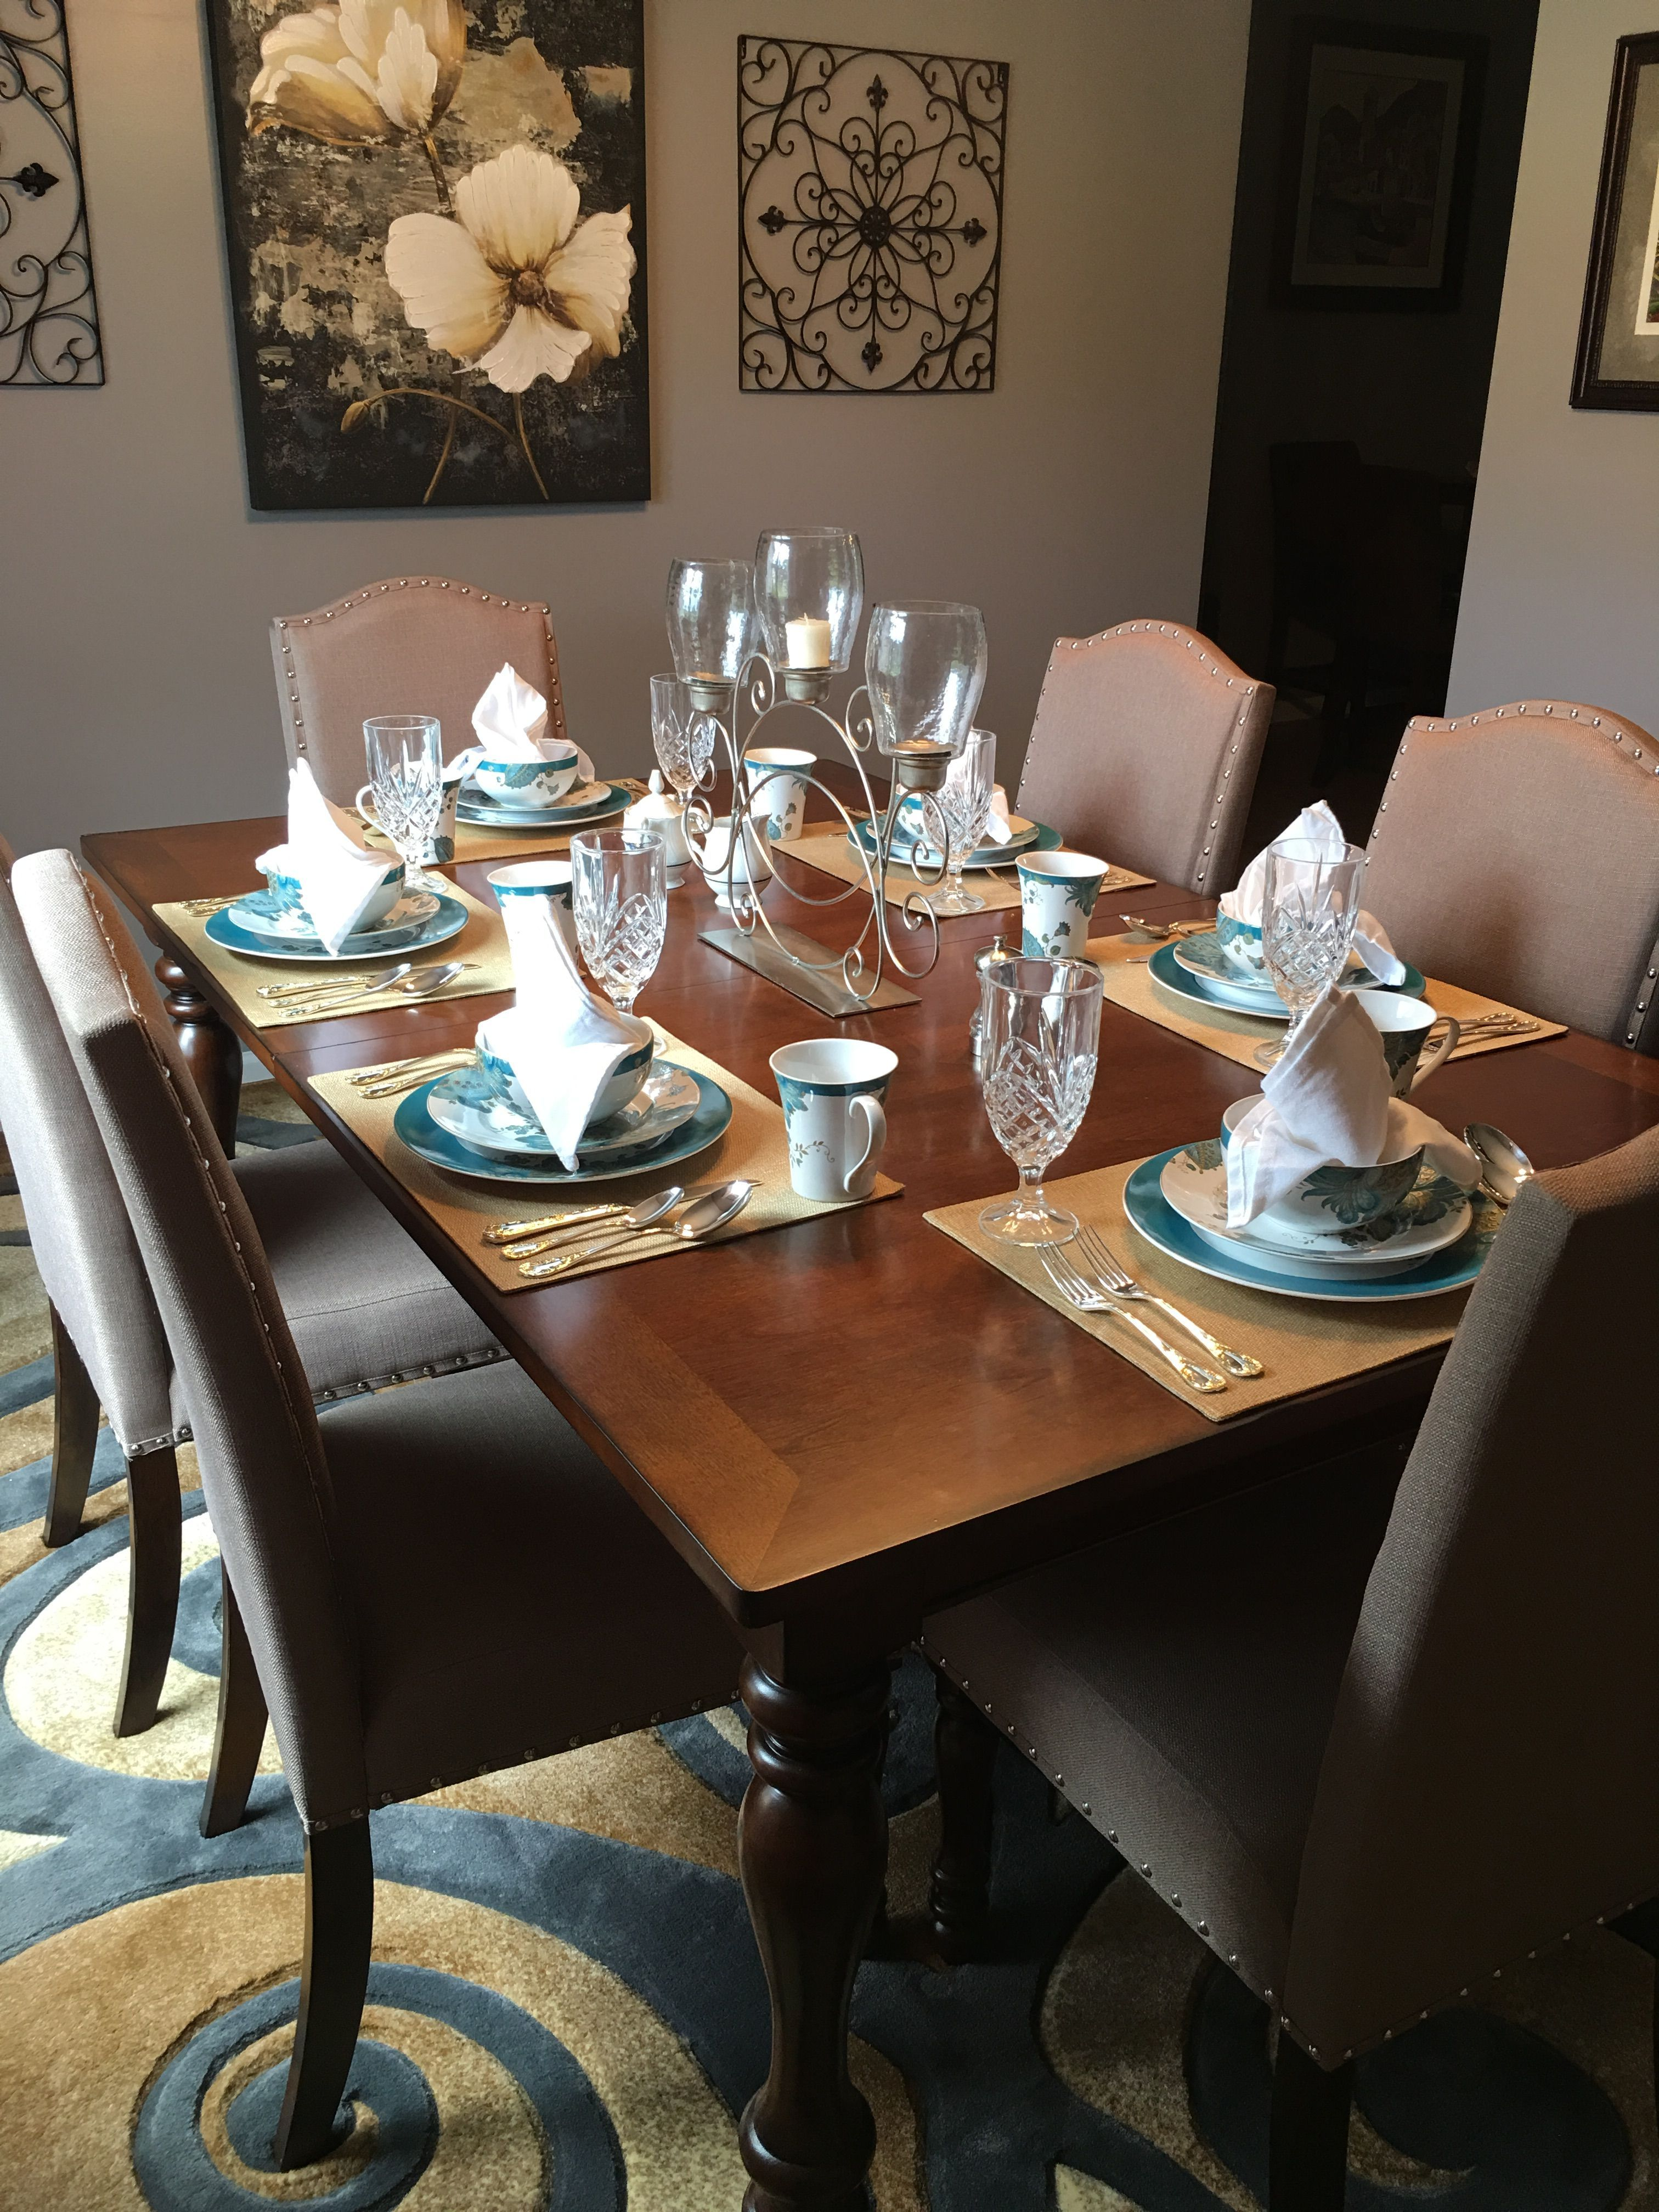 Finest Dining Room Concepts - June, 2018 | Fine dining ...